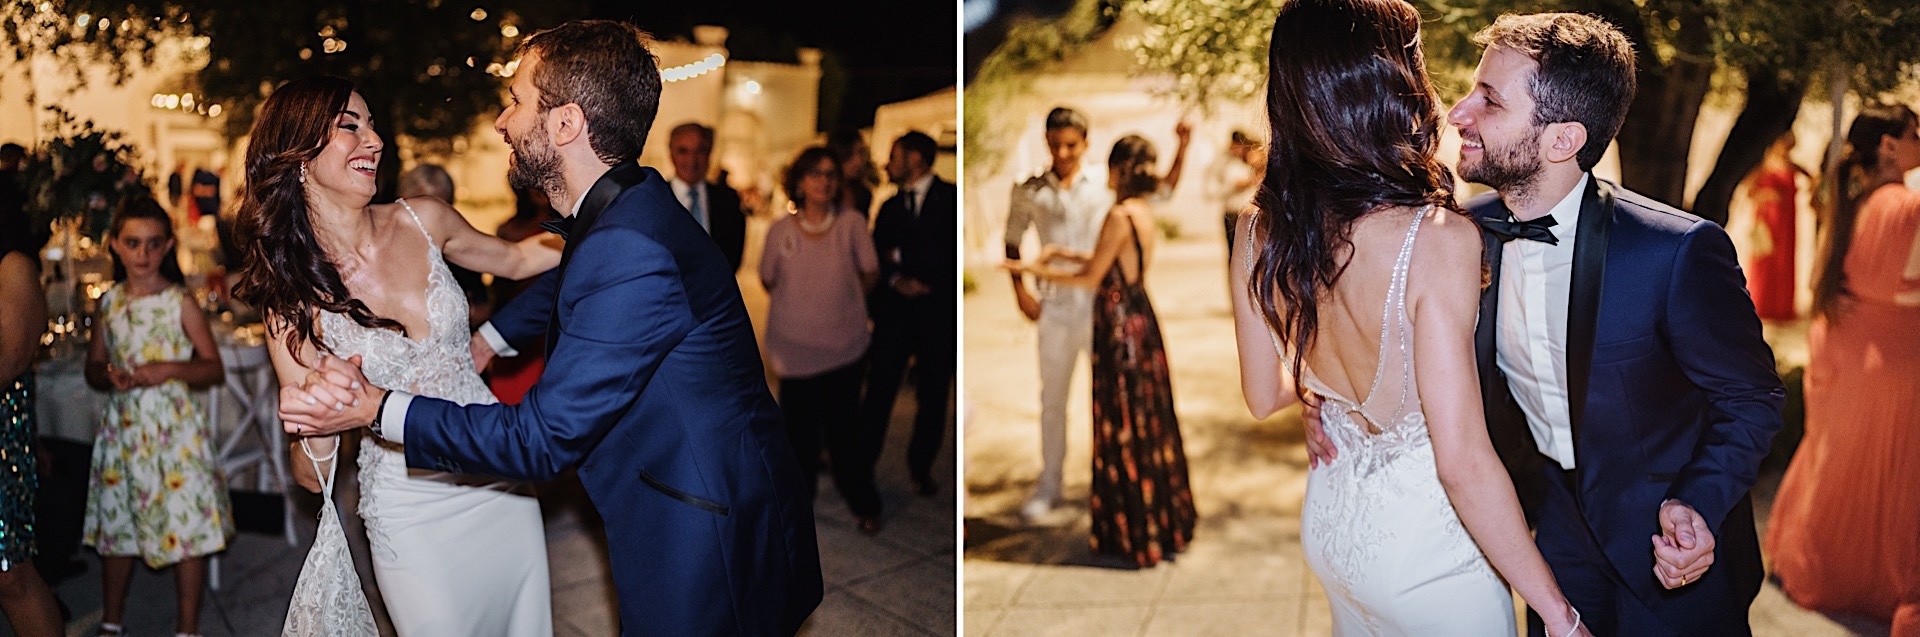 67__DSC0109__DSC0192_san_wedding_la_giuseppe_angelo_puglia_marriage_chiara_destination_tenimento_pedone_maria_photographer_torre